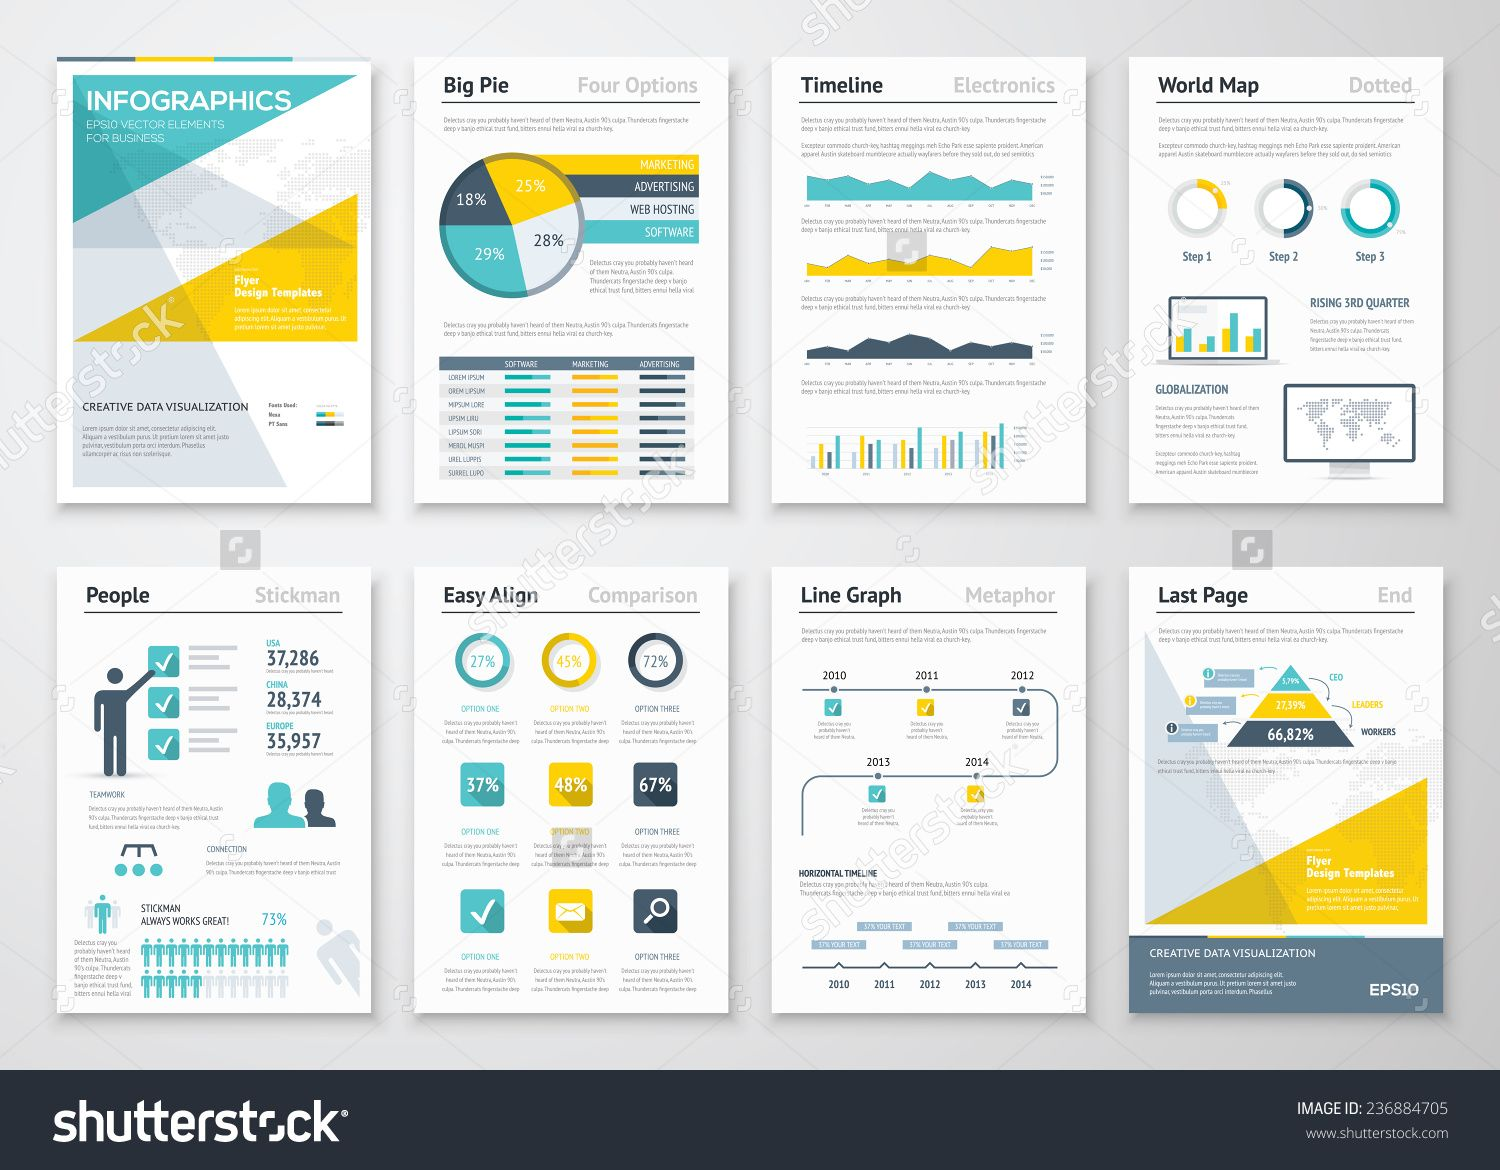 Business Info Graphics Vector Elements For Corporate Brochures Collection Of Modern Infographic Metaphors In A Flye Infographic Brochures Infographic Brochure